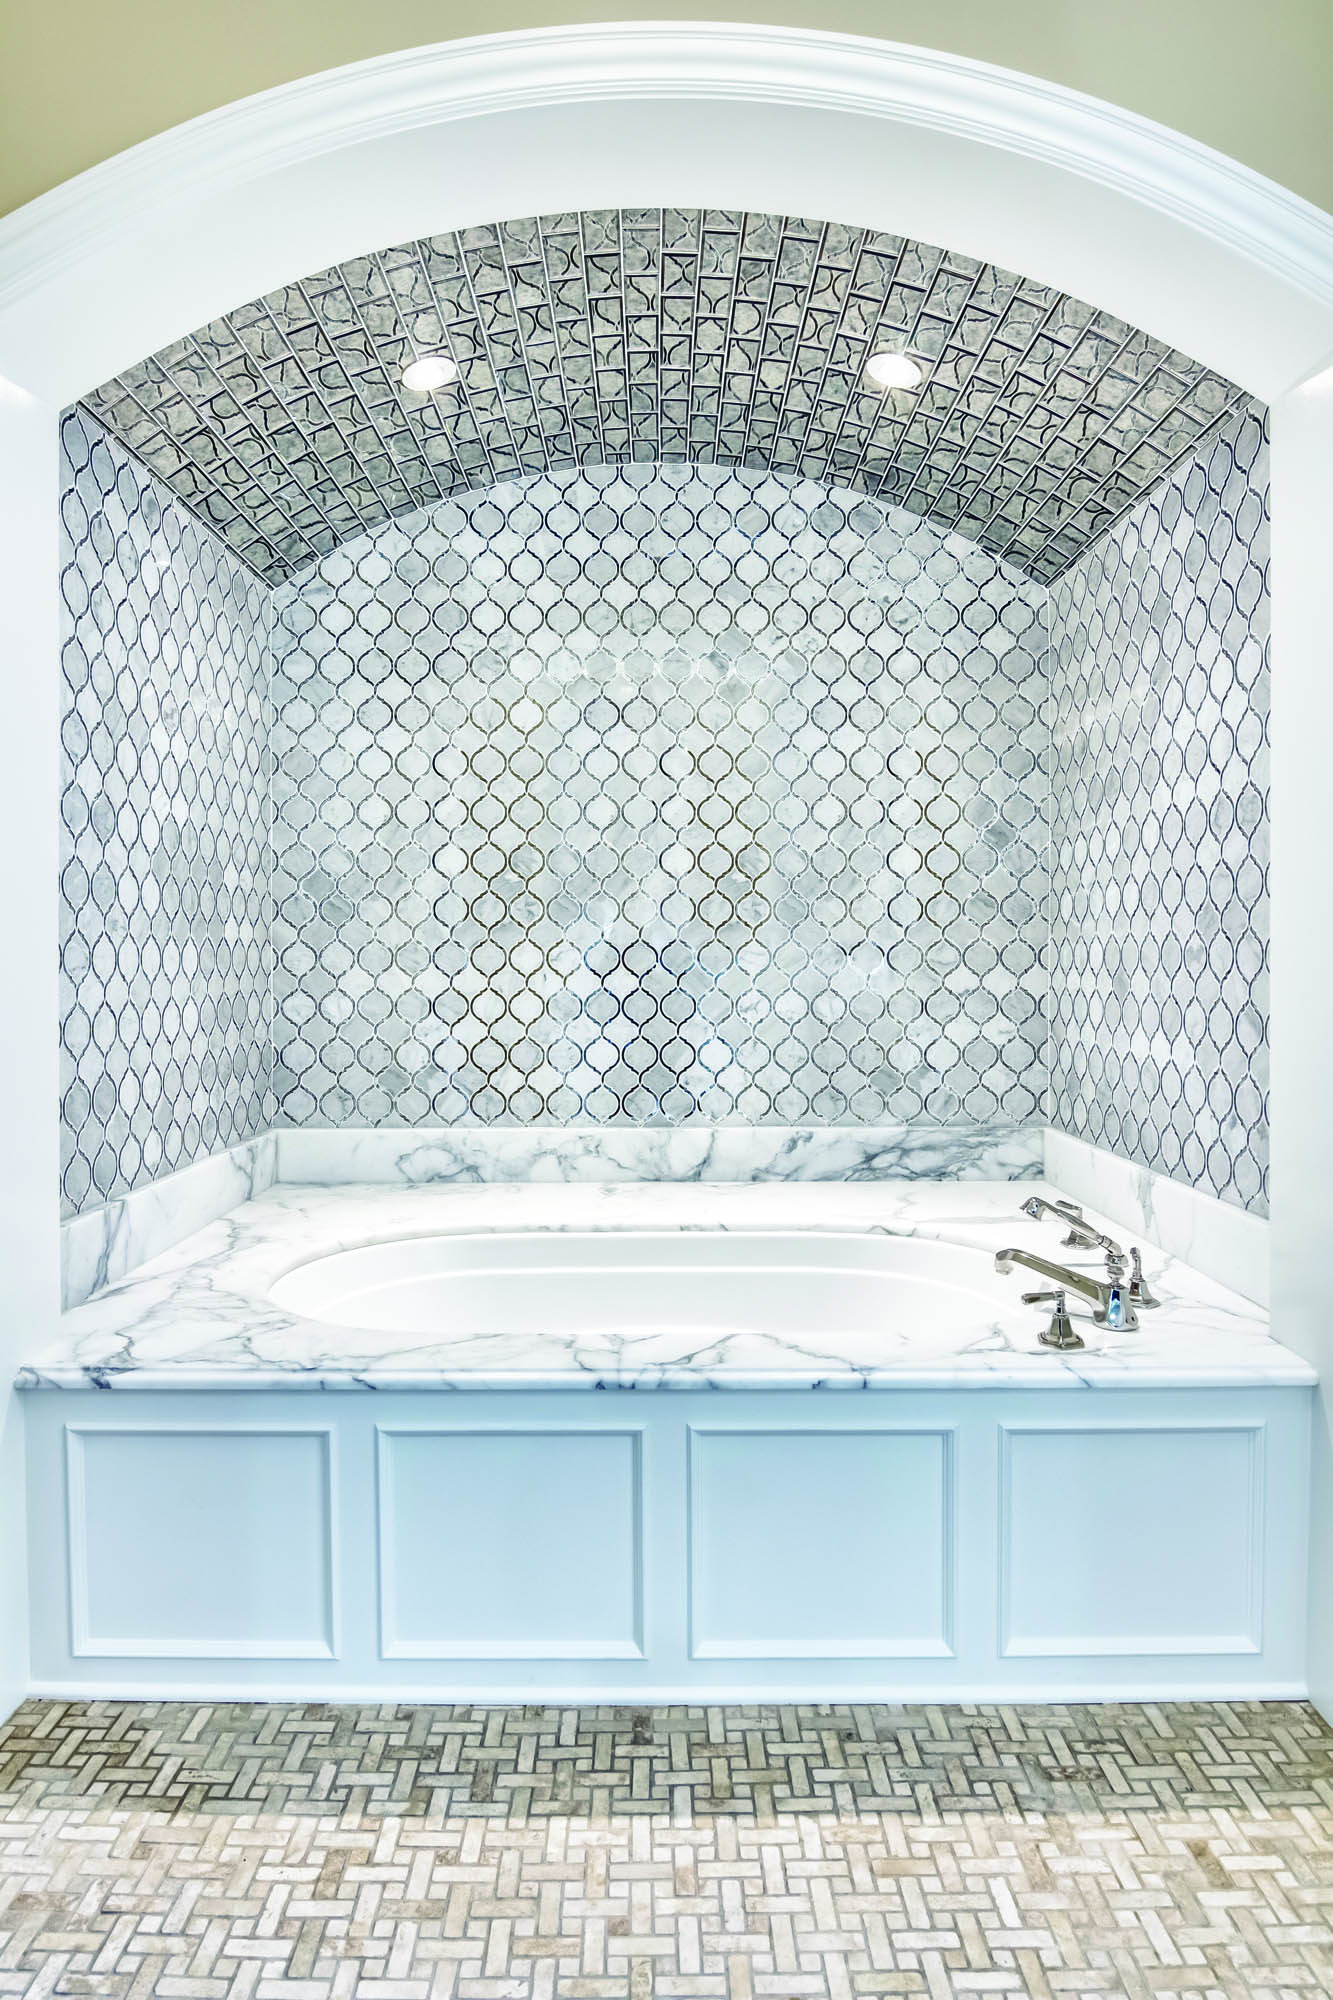 Mirrored bathtub surround